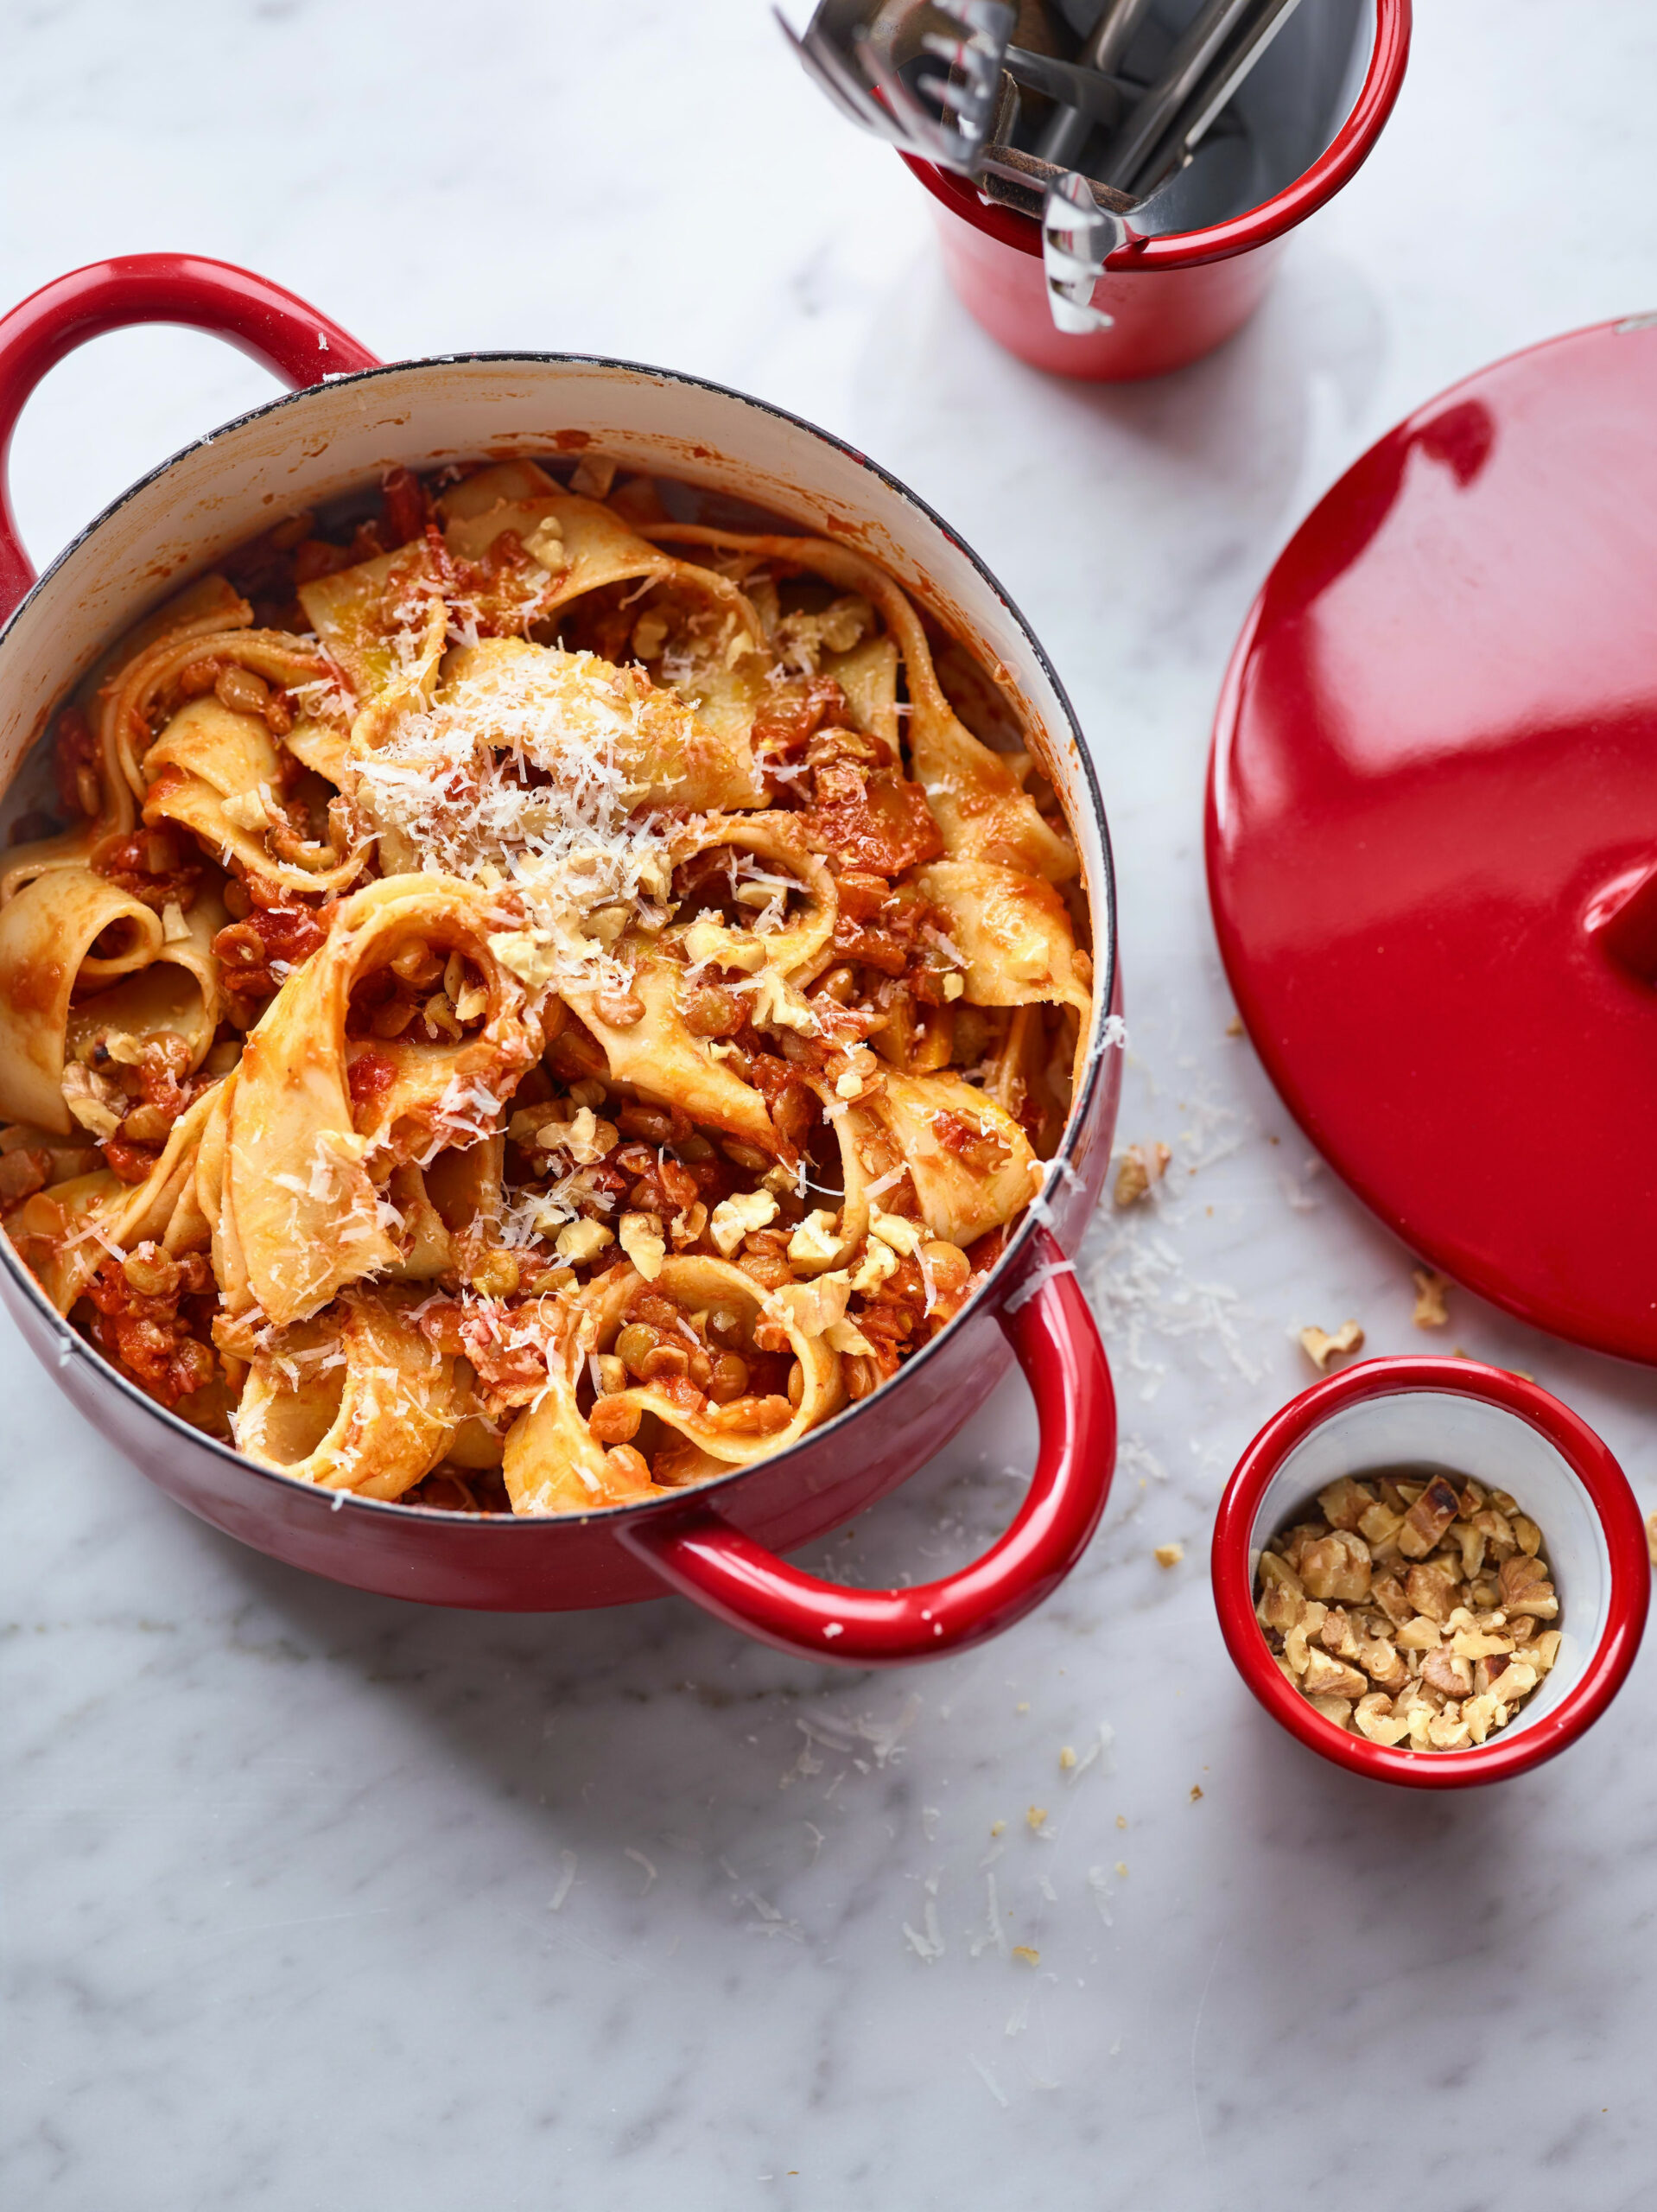 Joe Wicks Shares Five Delicious Meat Free Recipes To Help ..